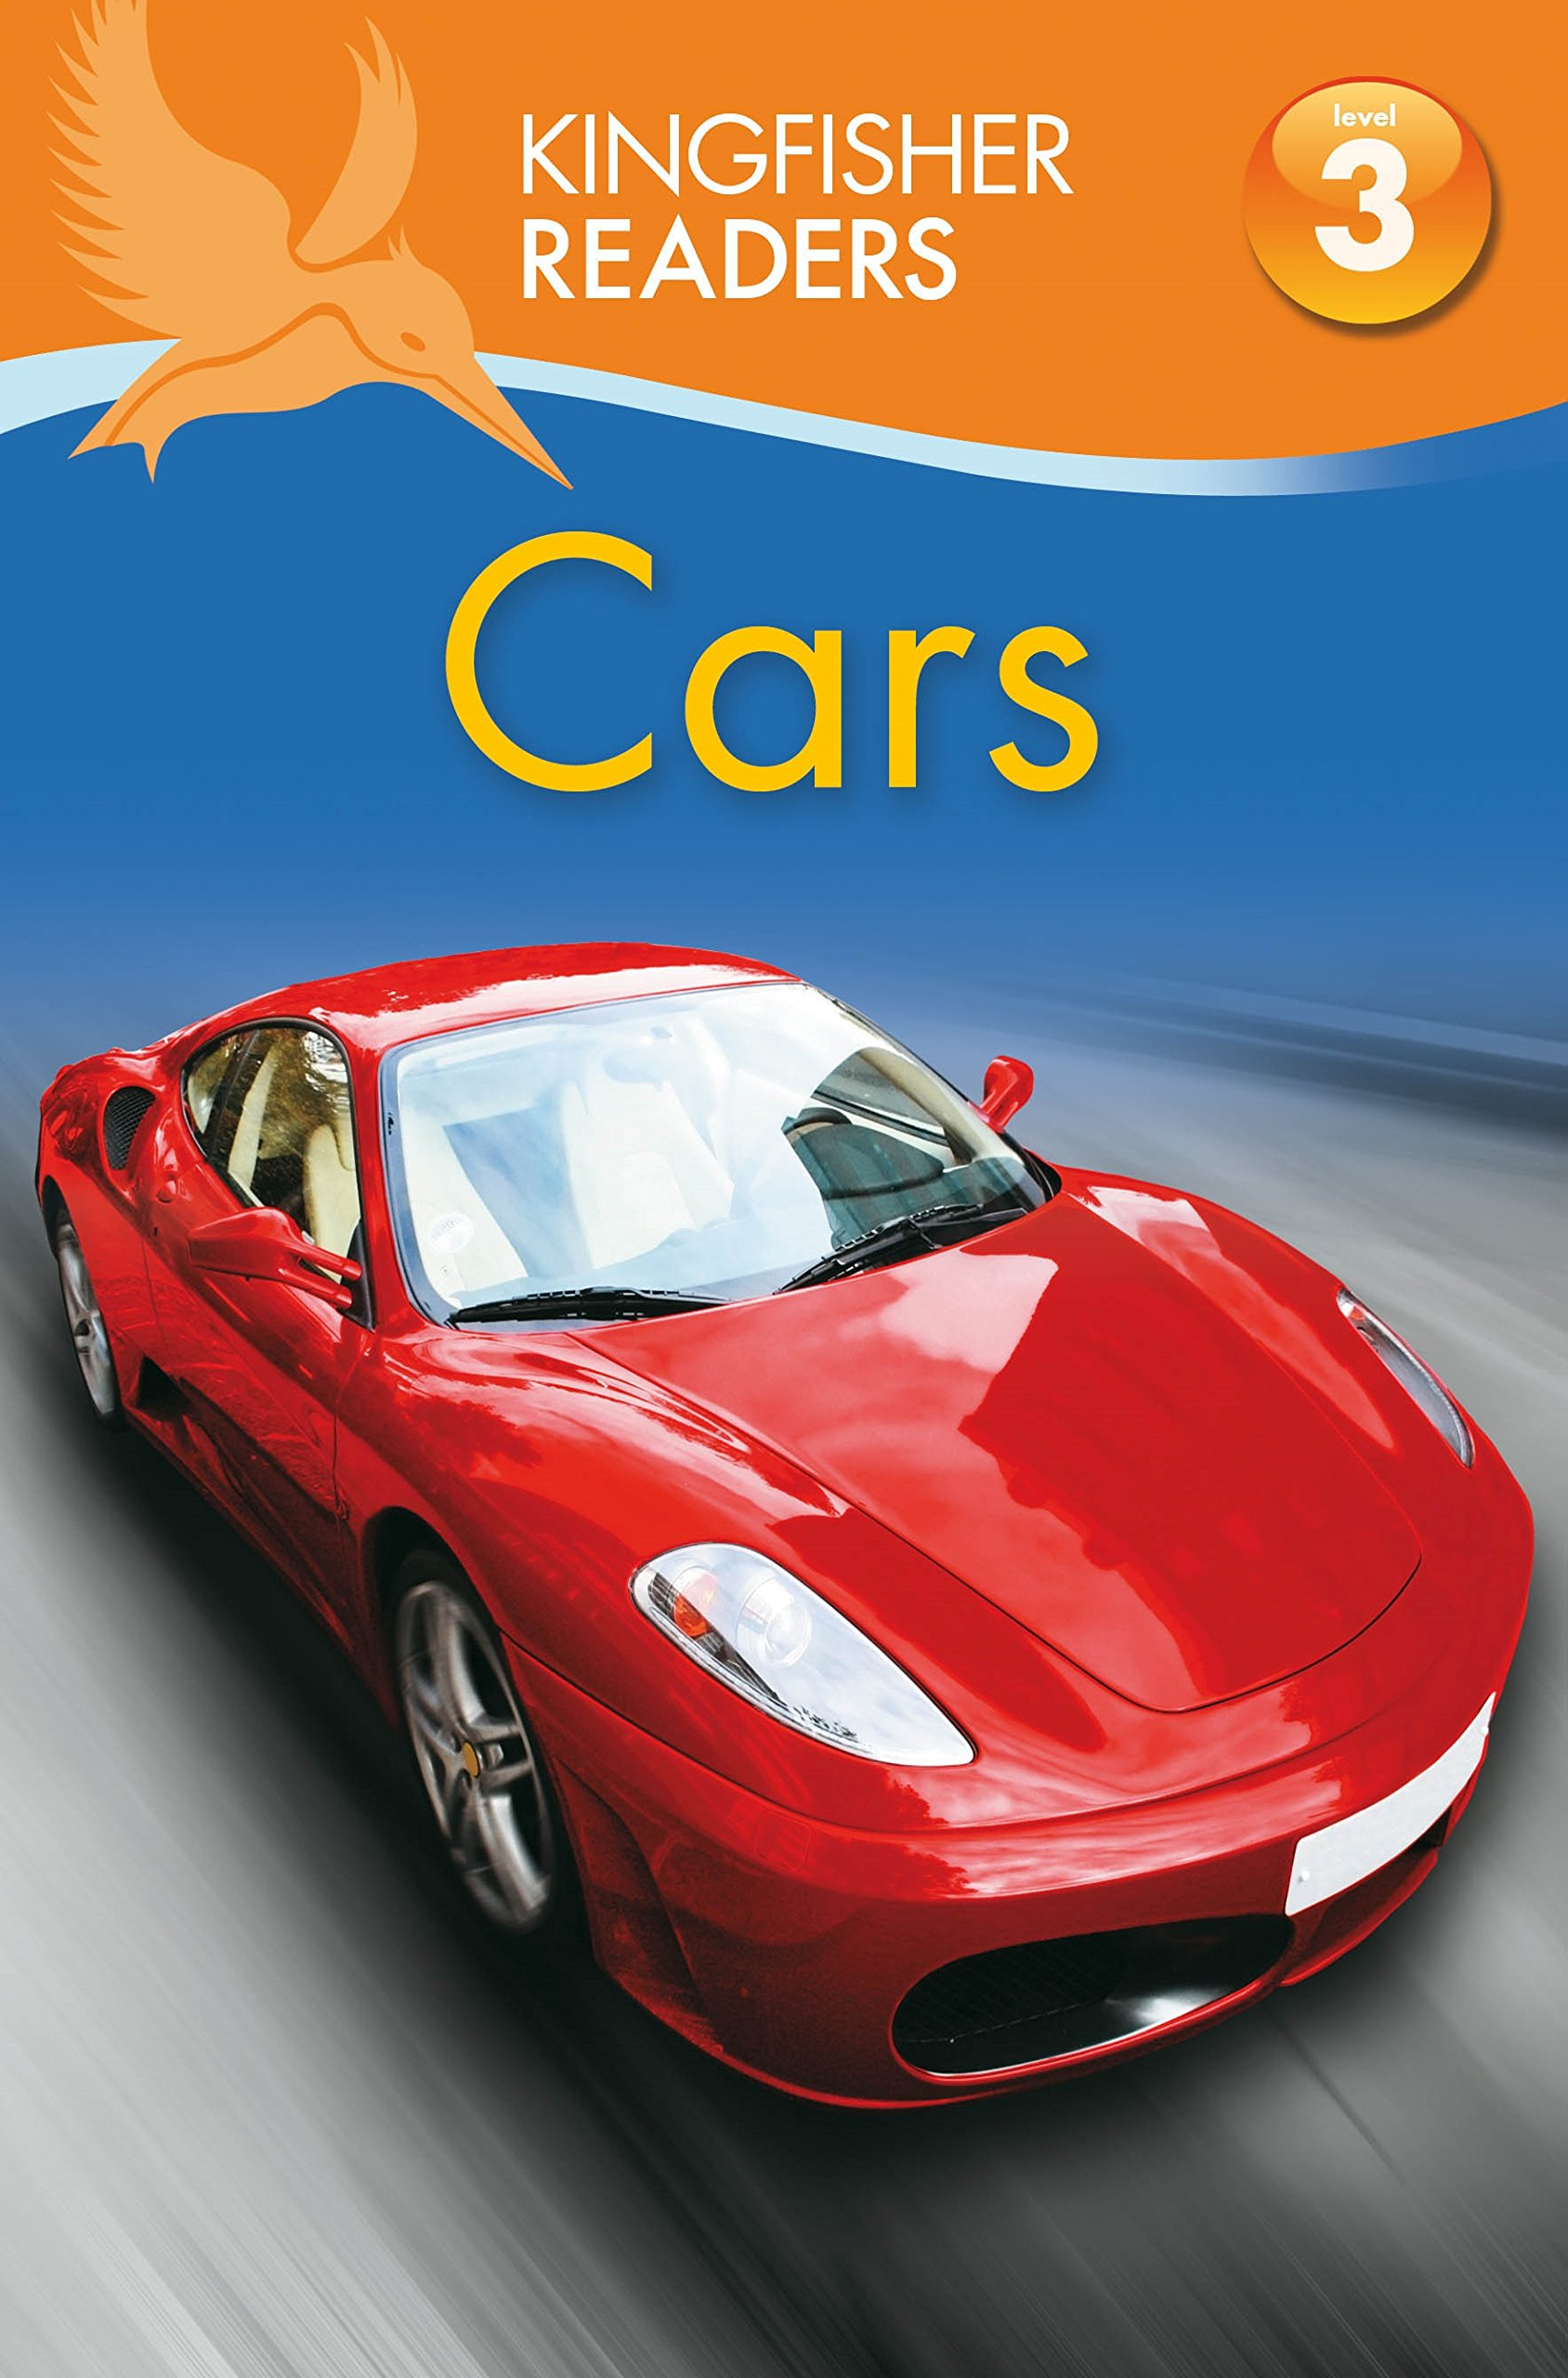 Kingfisher Readers: Cars (Level 3: Reading Alone with Some Help) reading literacy for adolescents